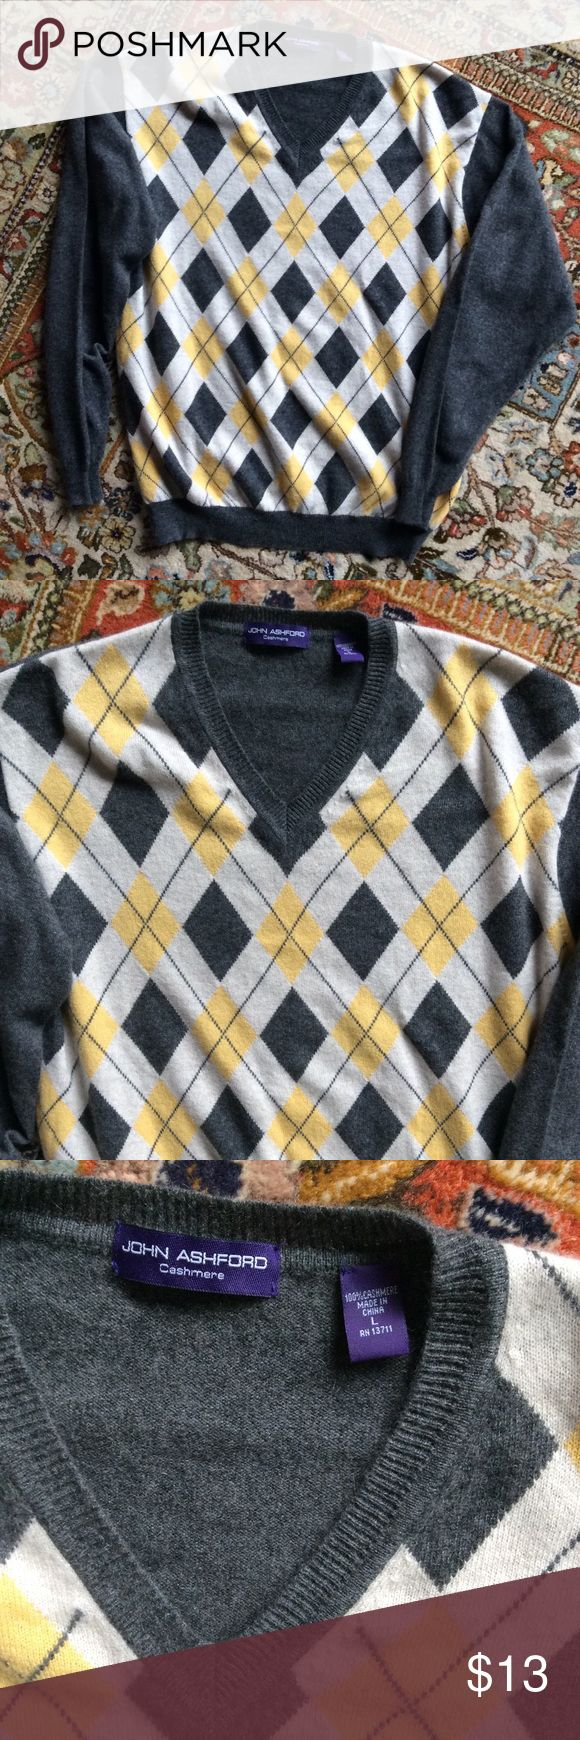 Men's cashmere sweater by John Ashford, sz L Luxury and class combine to make this soft sweater by John Ashford a win!! john ashford Sweaters